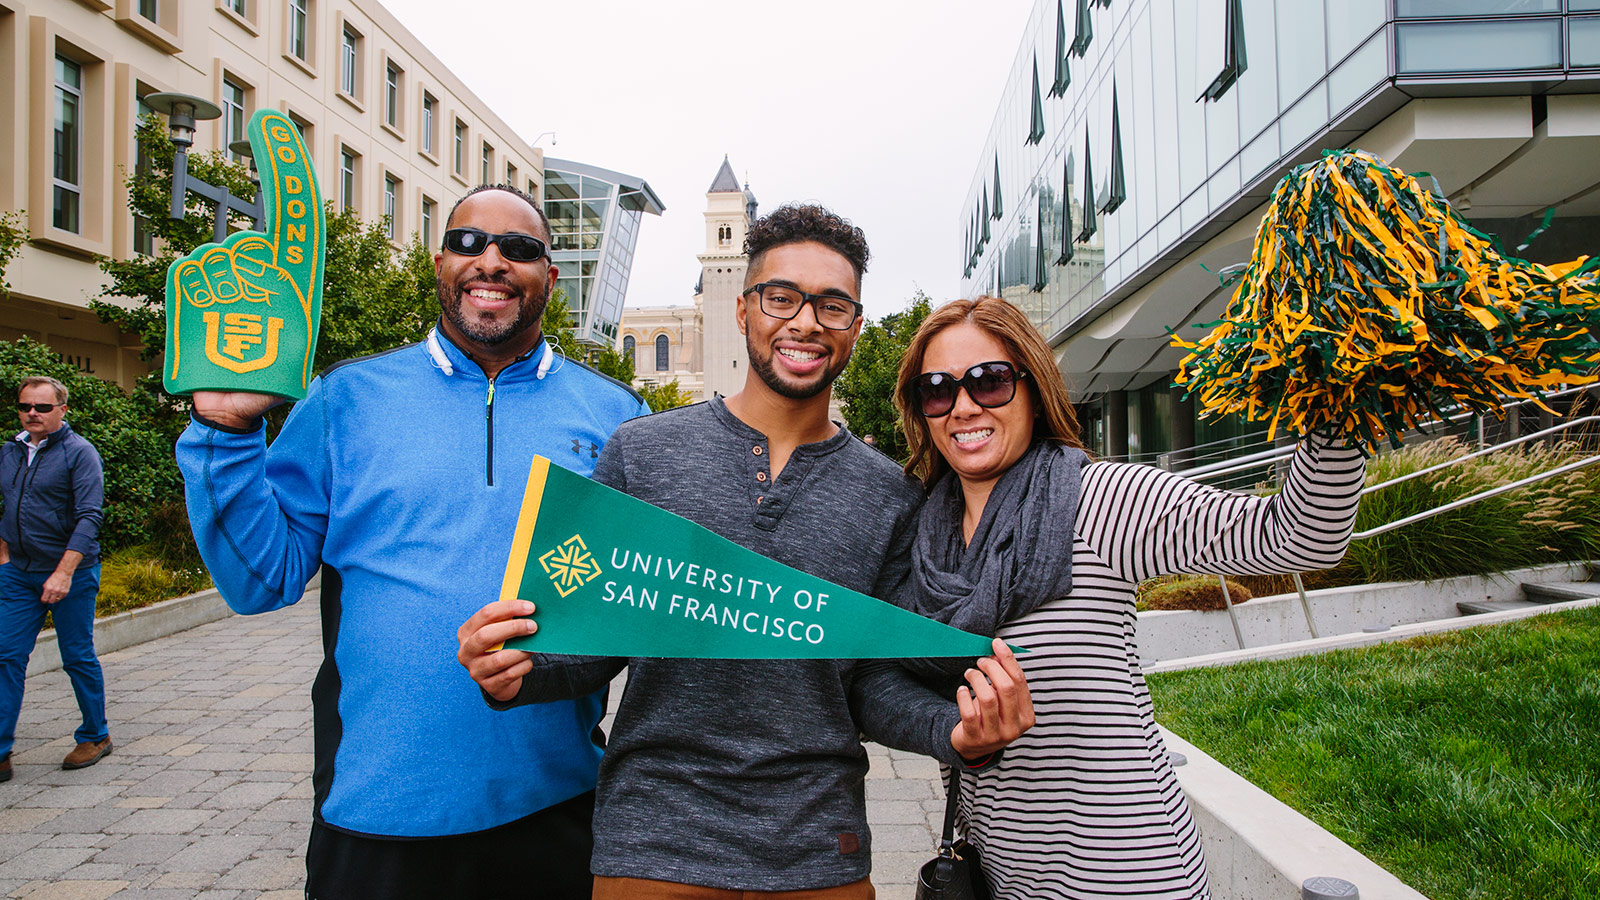 New USF student Matthew Brown poses with his family on USF's campus